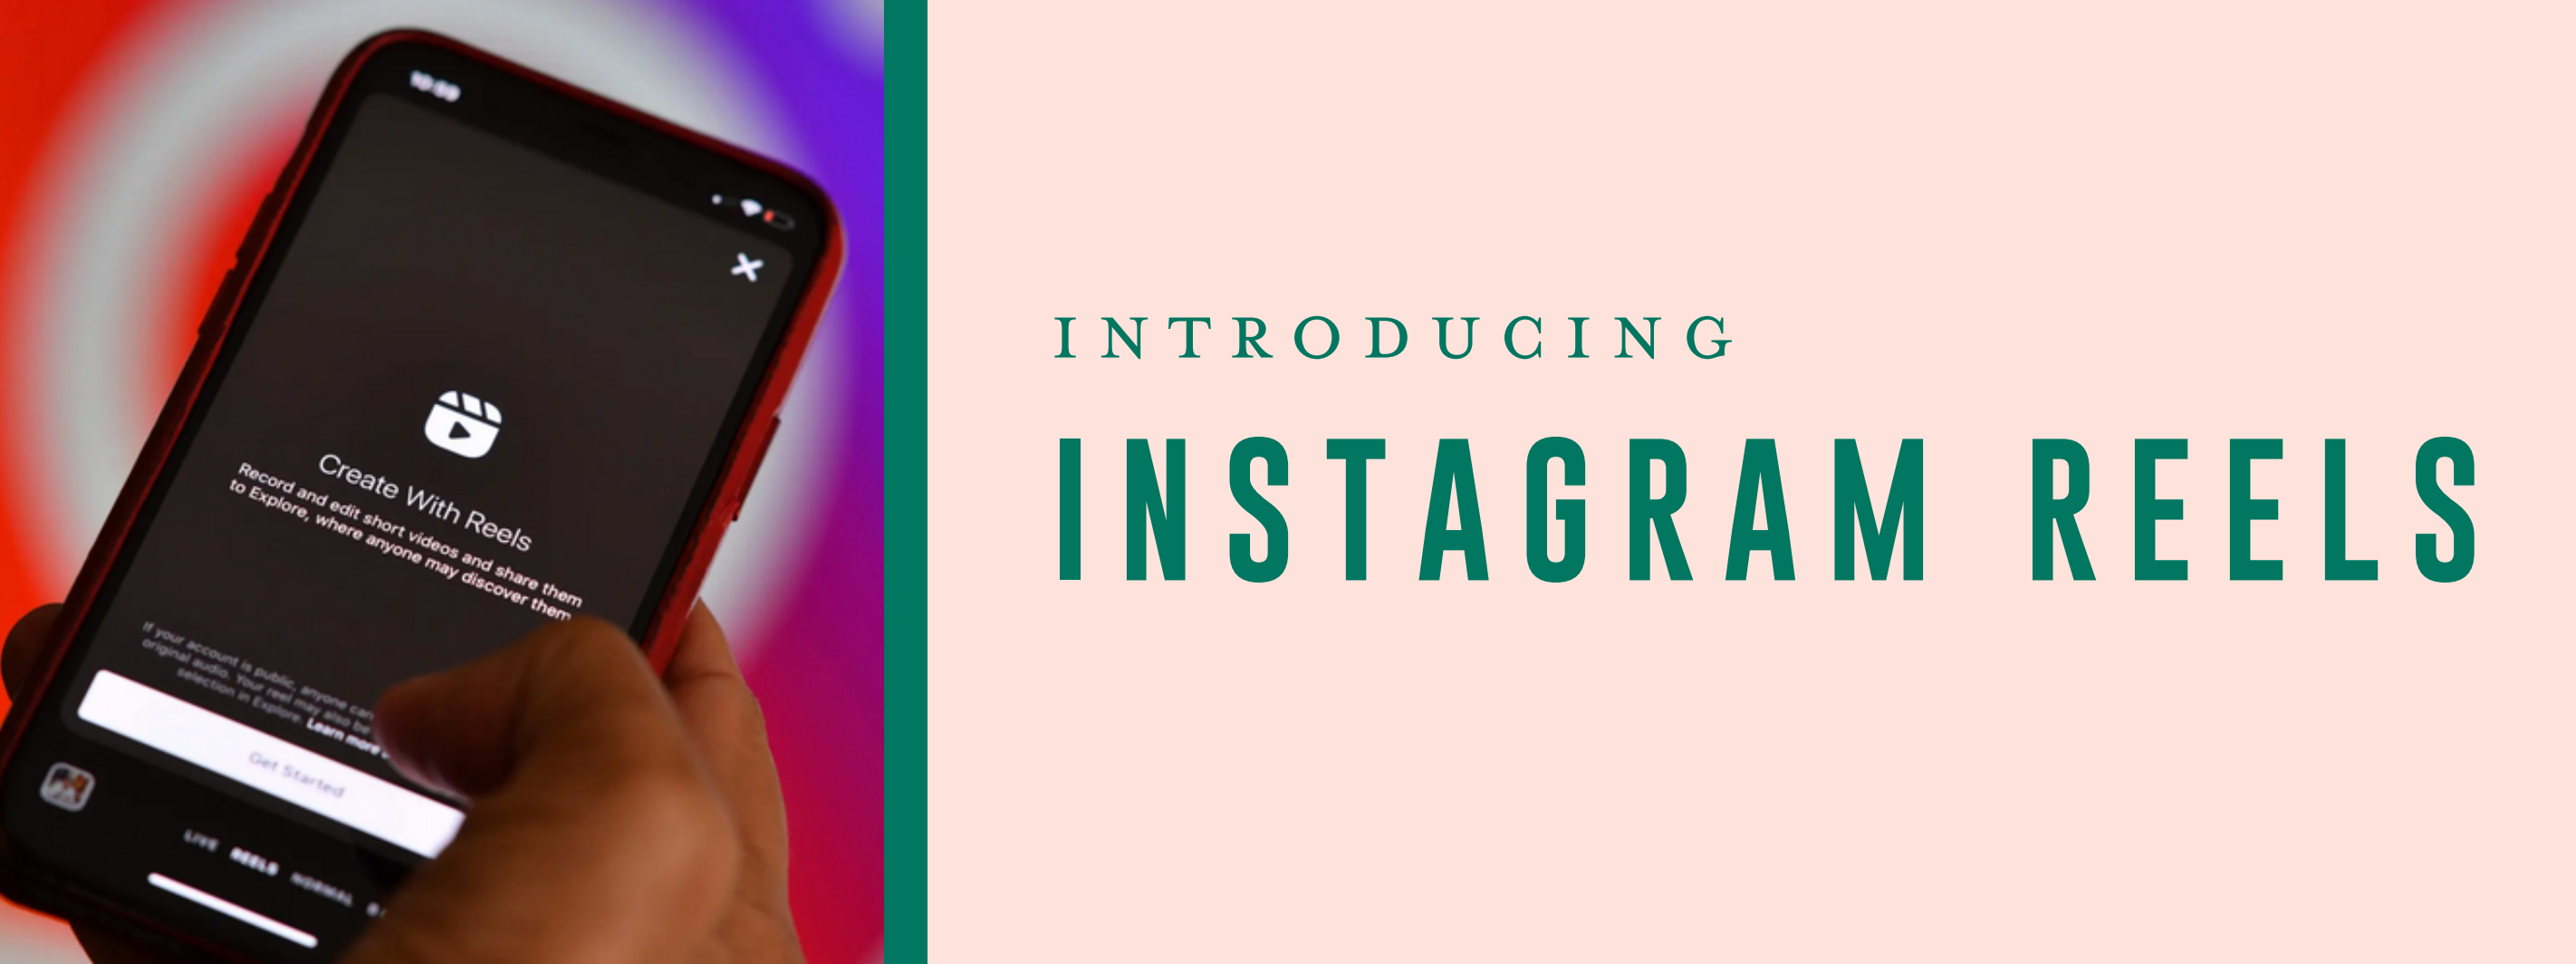 Instagram launches Reels in over 50 countries.